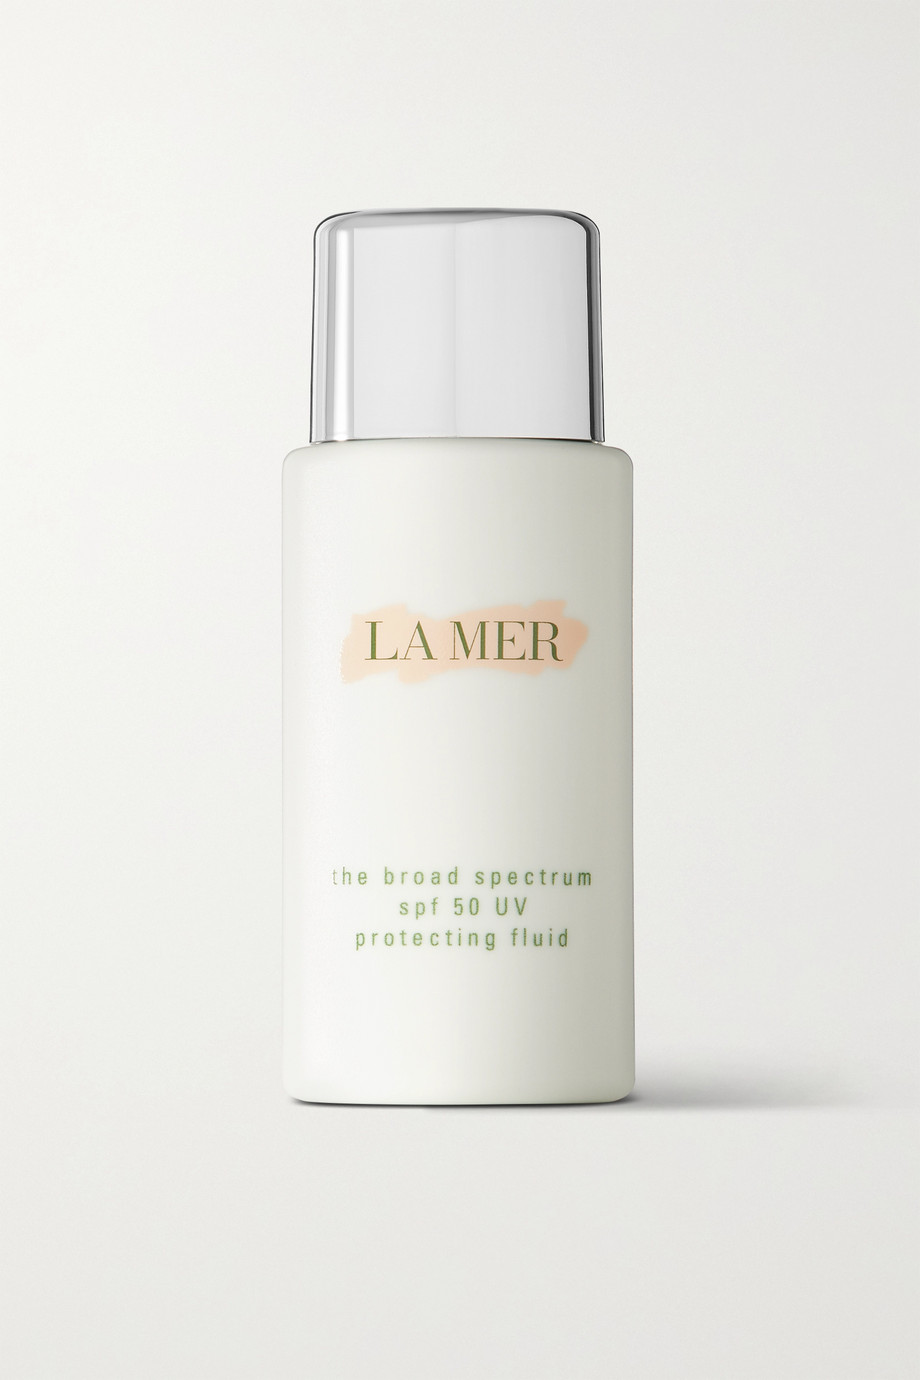 La Mer Broad Spectrum LSF 50 UV Protecting Fluid, 50 ml – Sonnencreme